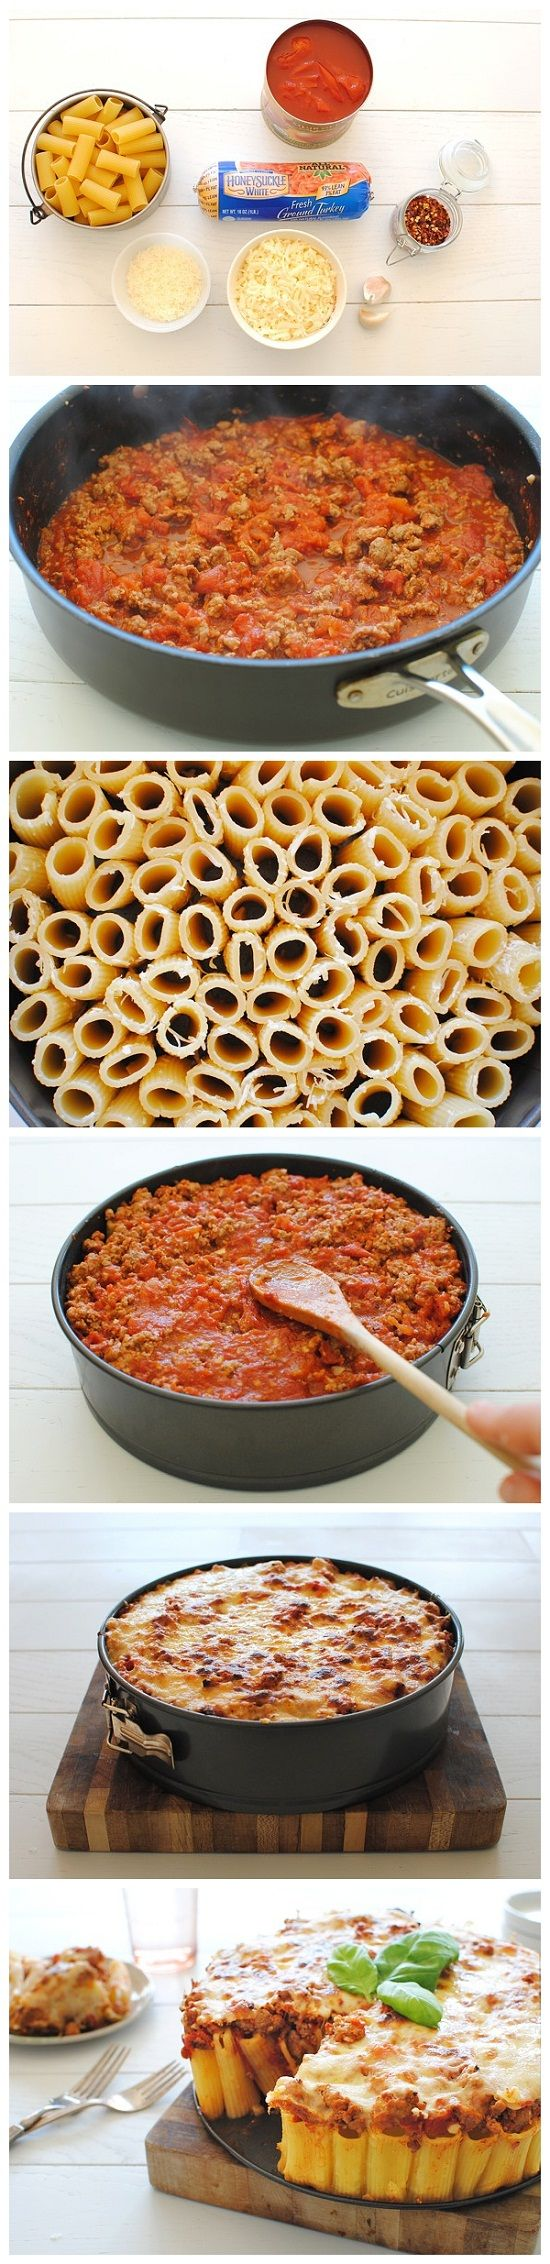 Rigatoni Pasta Pie - looks good!